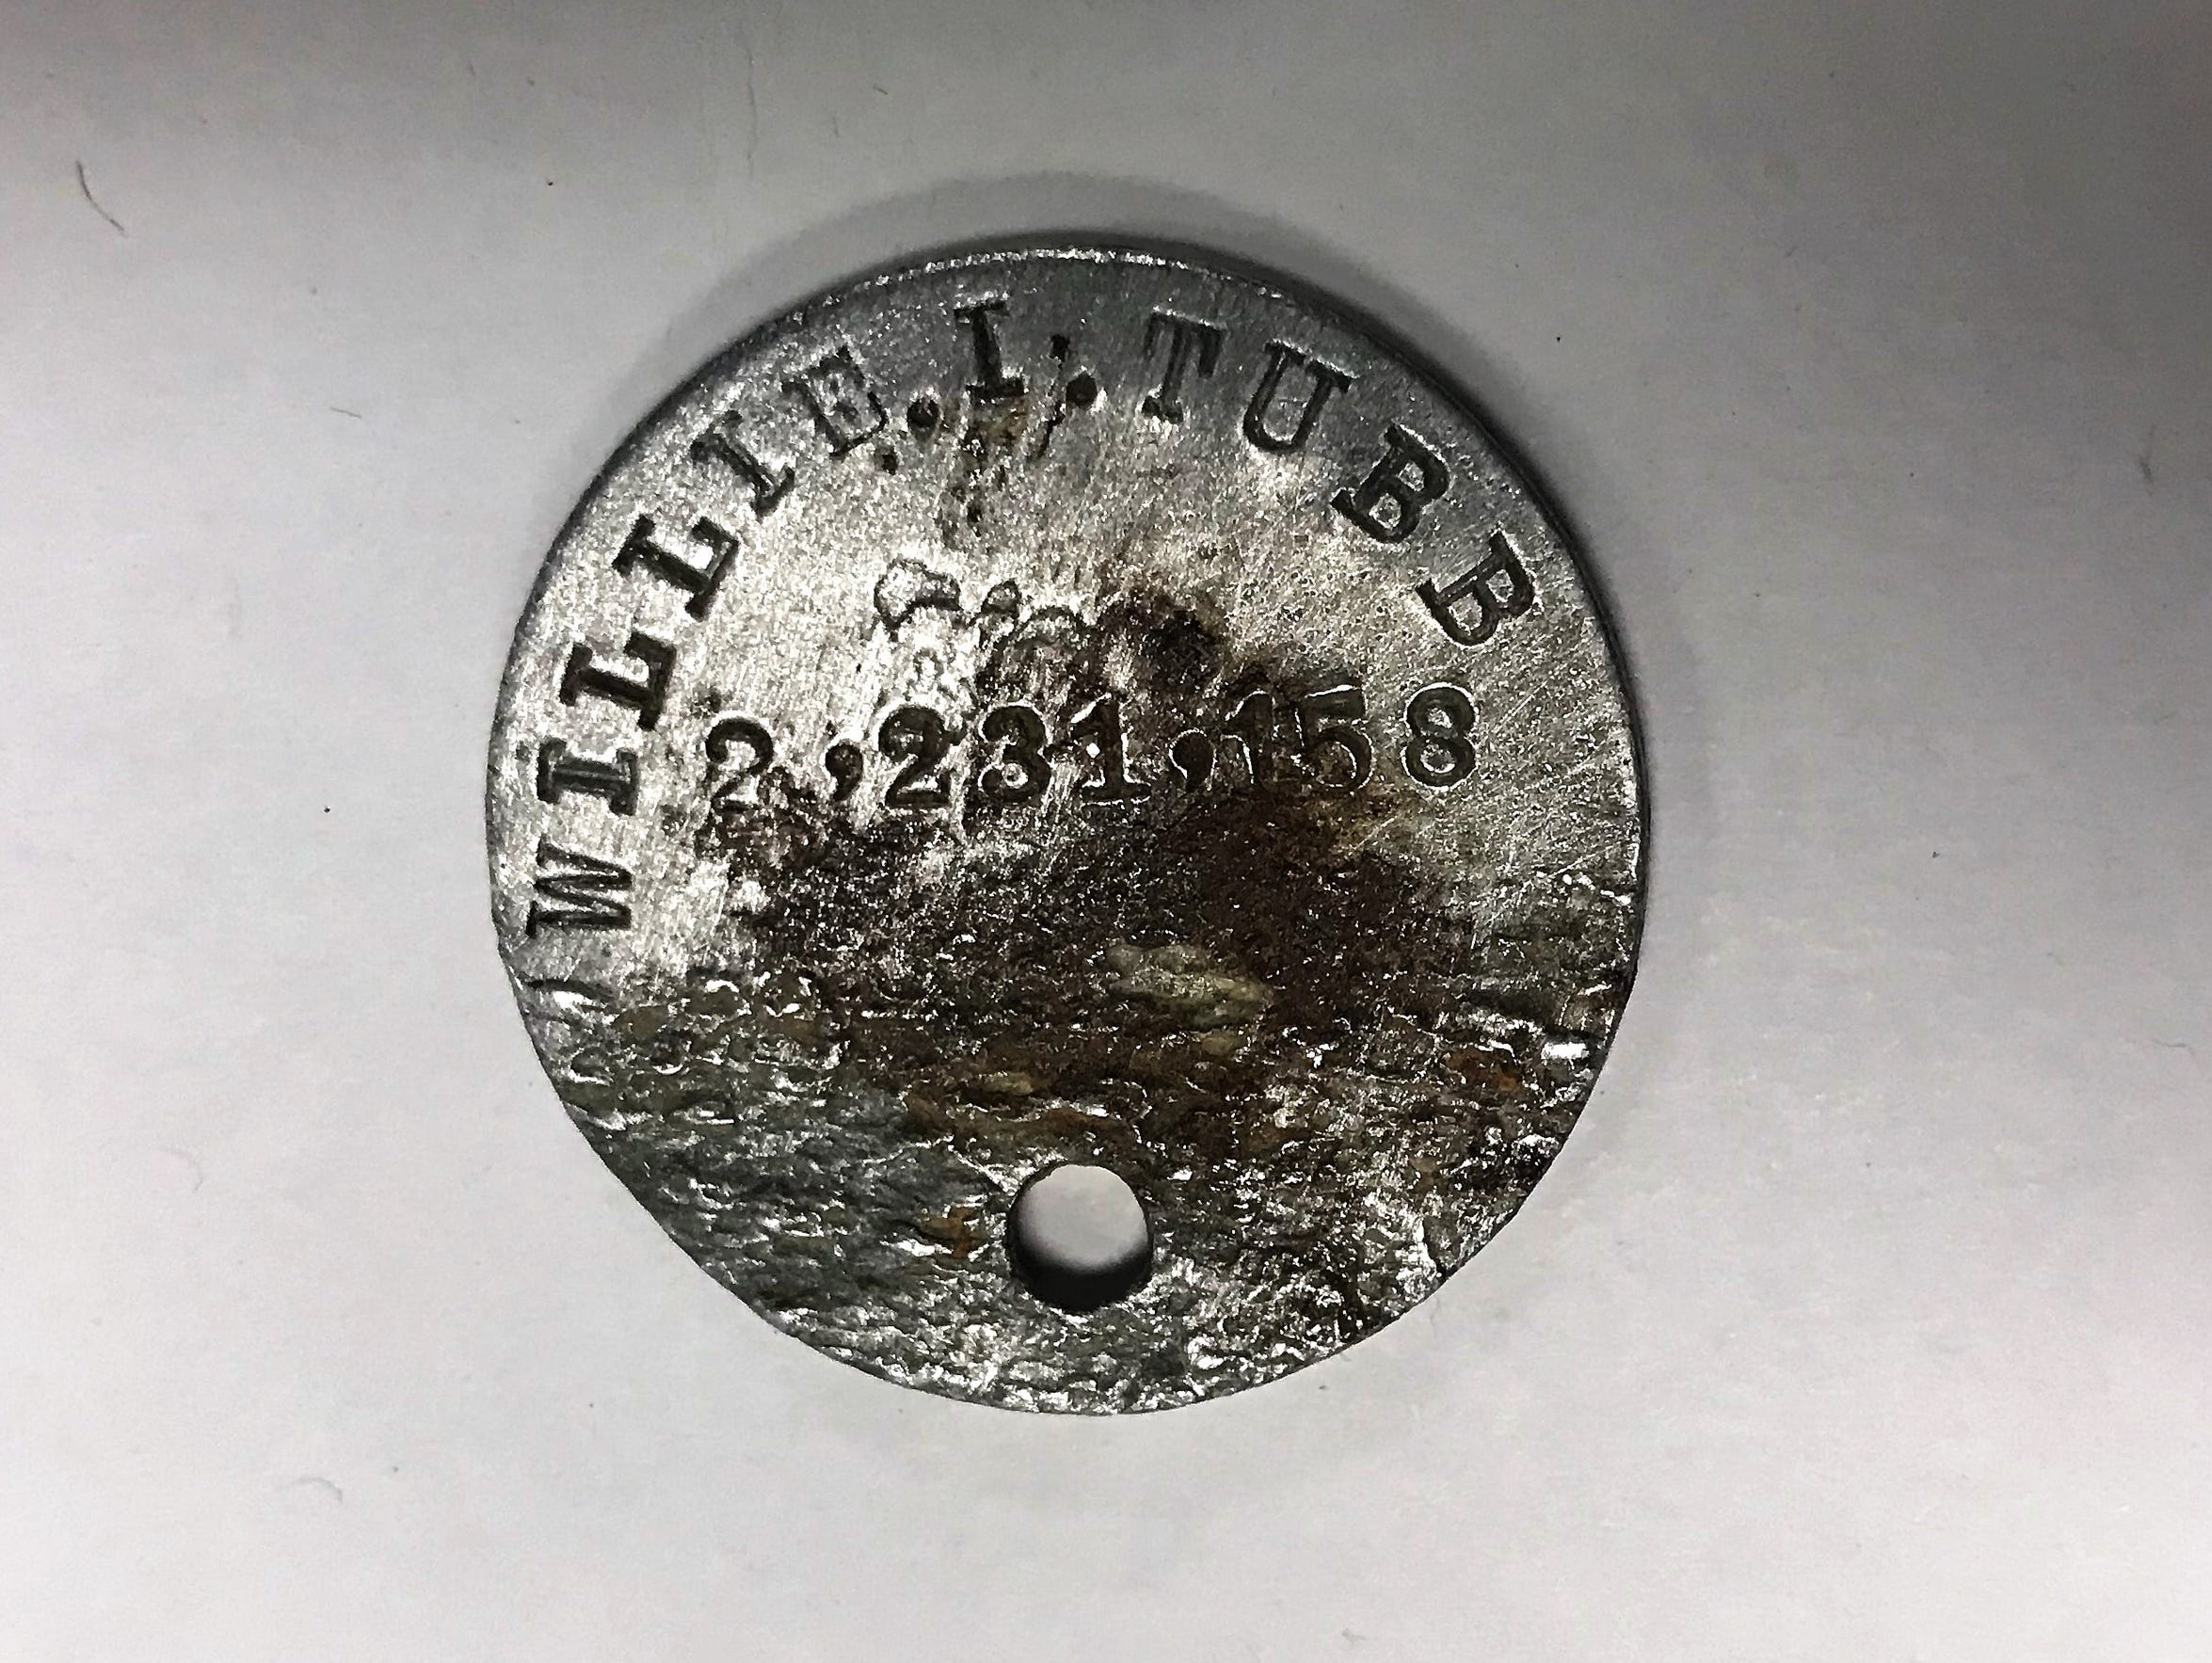 Willie Tubb's World War I dog tag, showing his name.